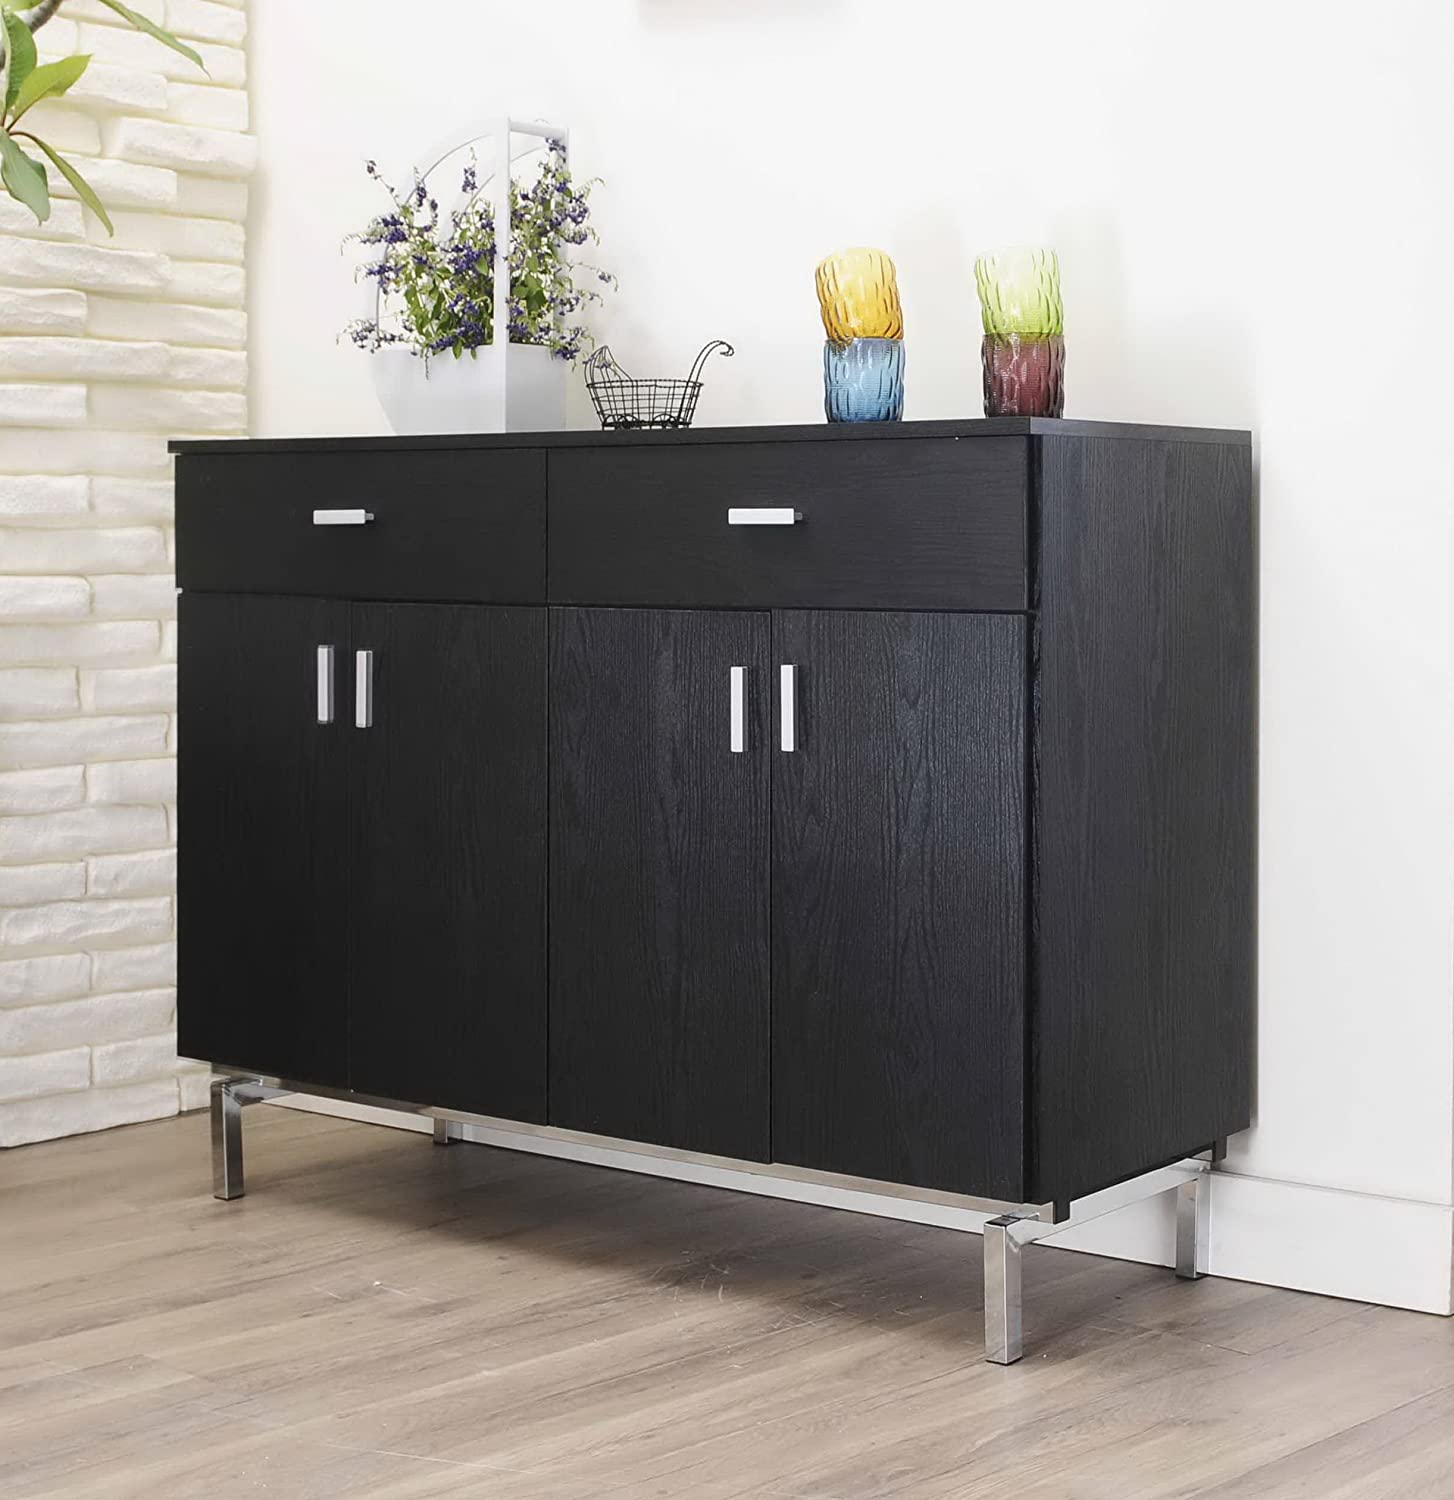 Charmant Amazon.com   IoHOMES Knox 2 Doors Buffet, Black   Kitchen Islands U0026 Carts